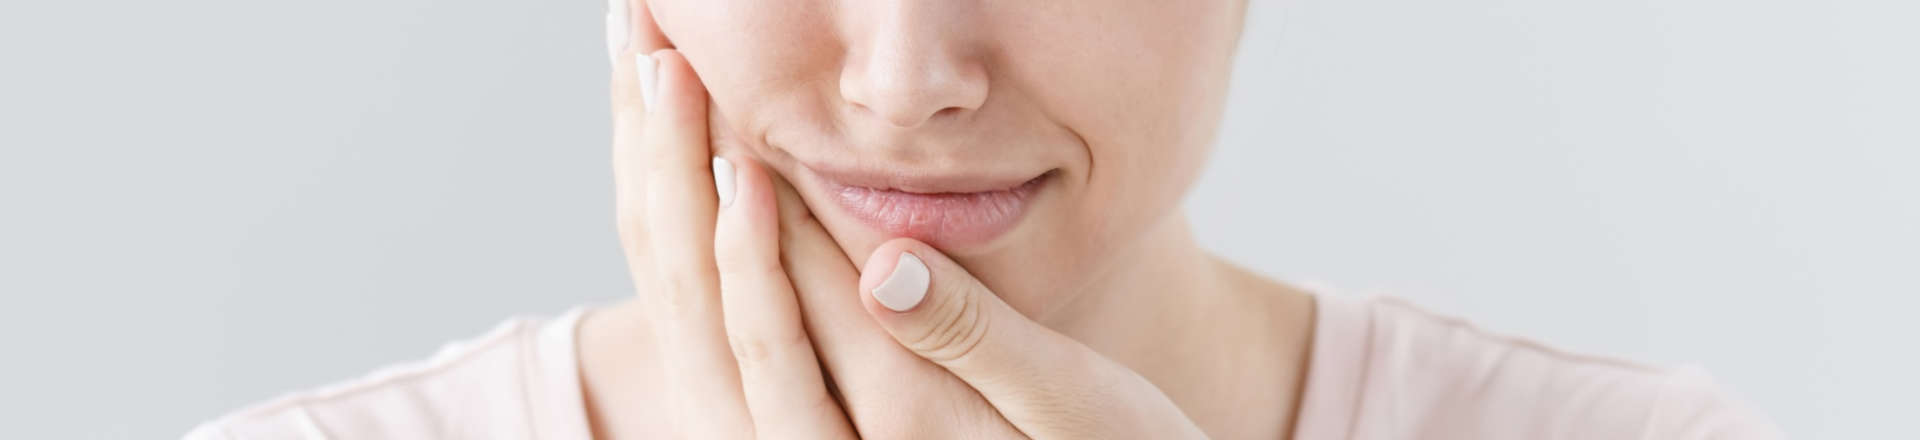 woman with dental pain pressing her cheek wth hands